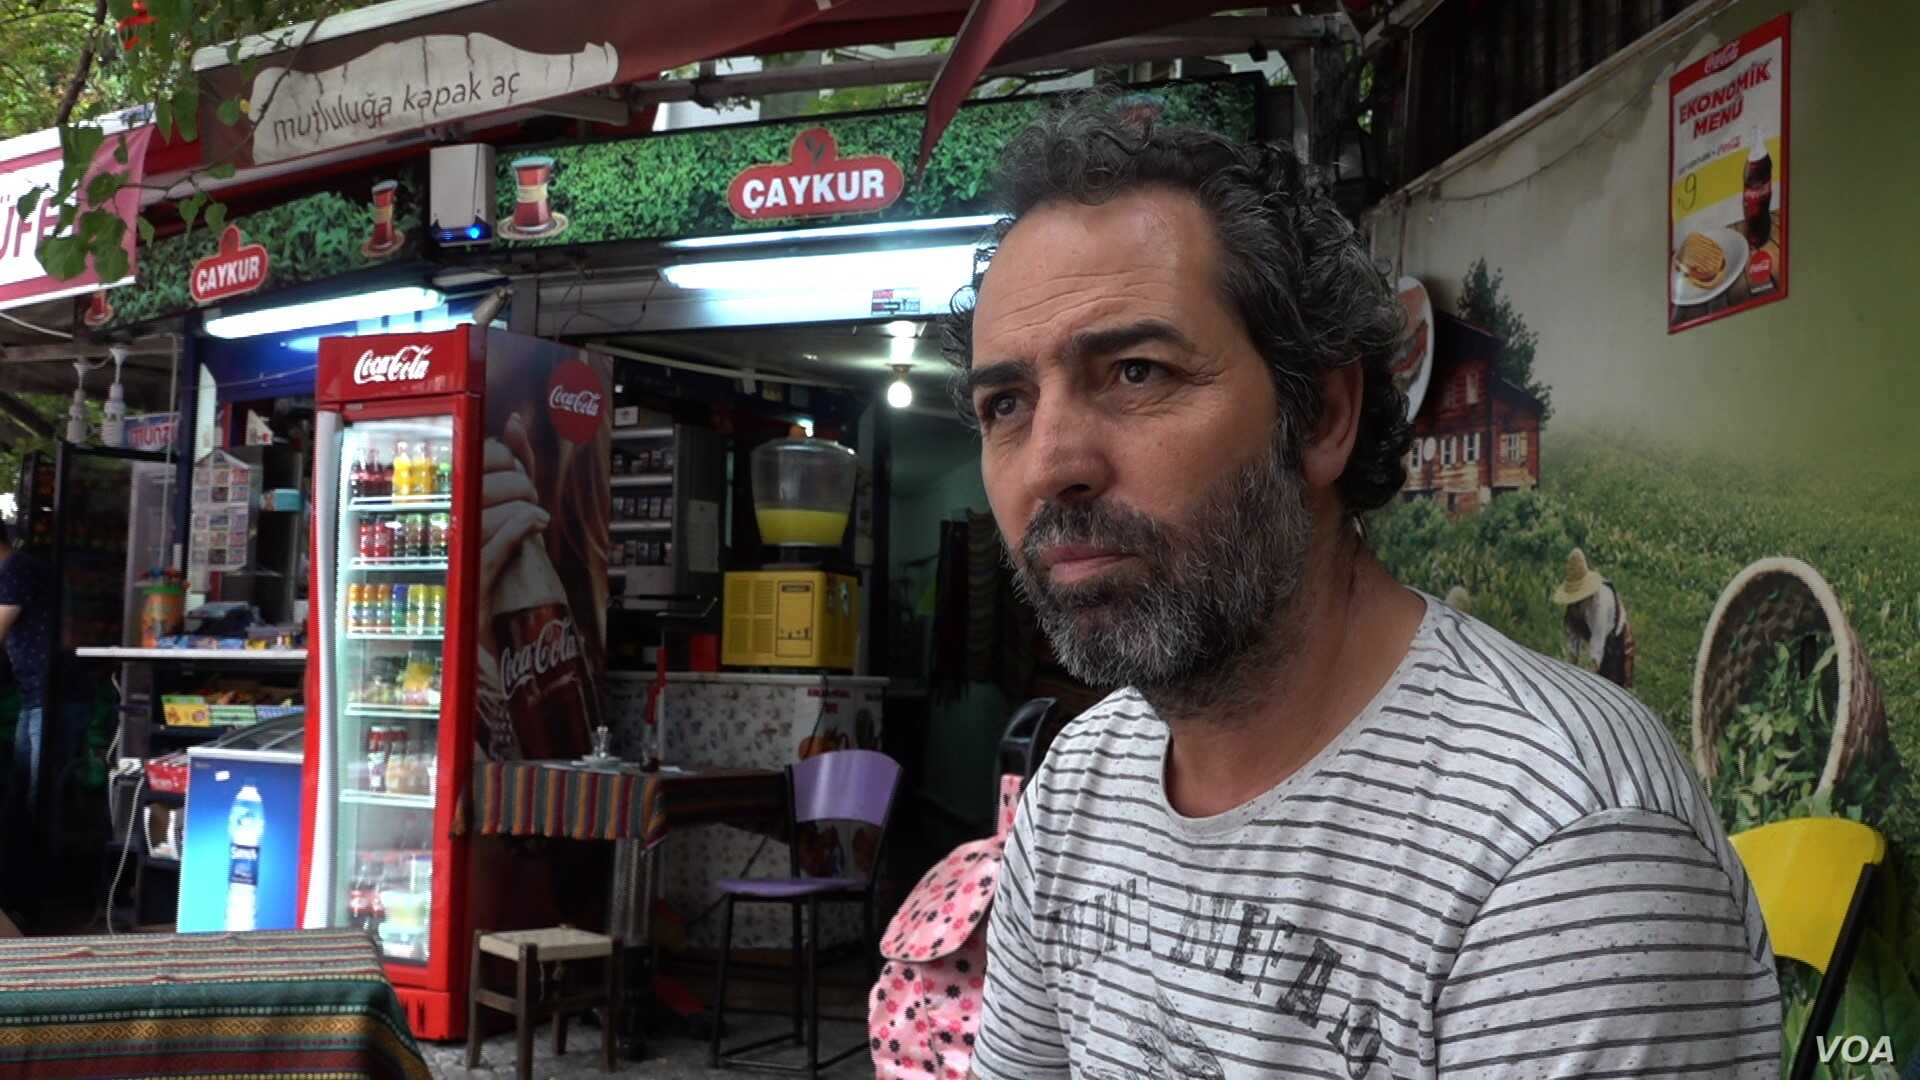 Tea shop owner Aslan Yuce says he sees fear in people's eyes as the value of Turkey's currency falls, Istanbul, Turkey, Aug. 17, 2018. (D. Jones/VOA News)